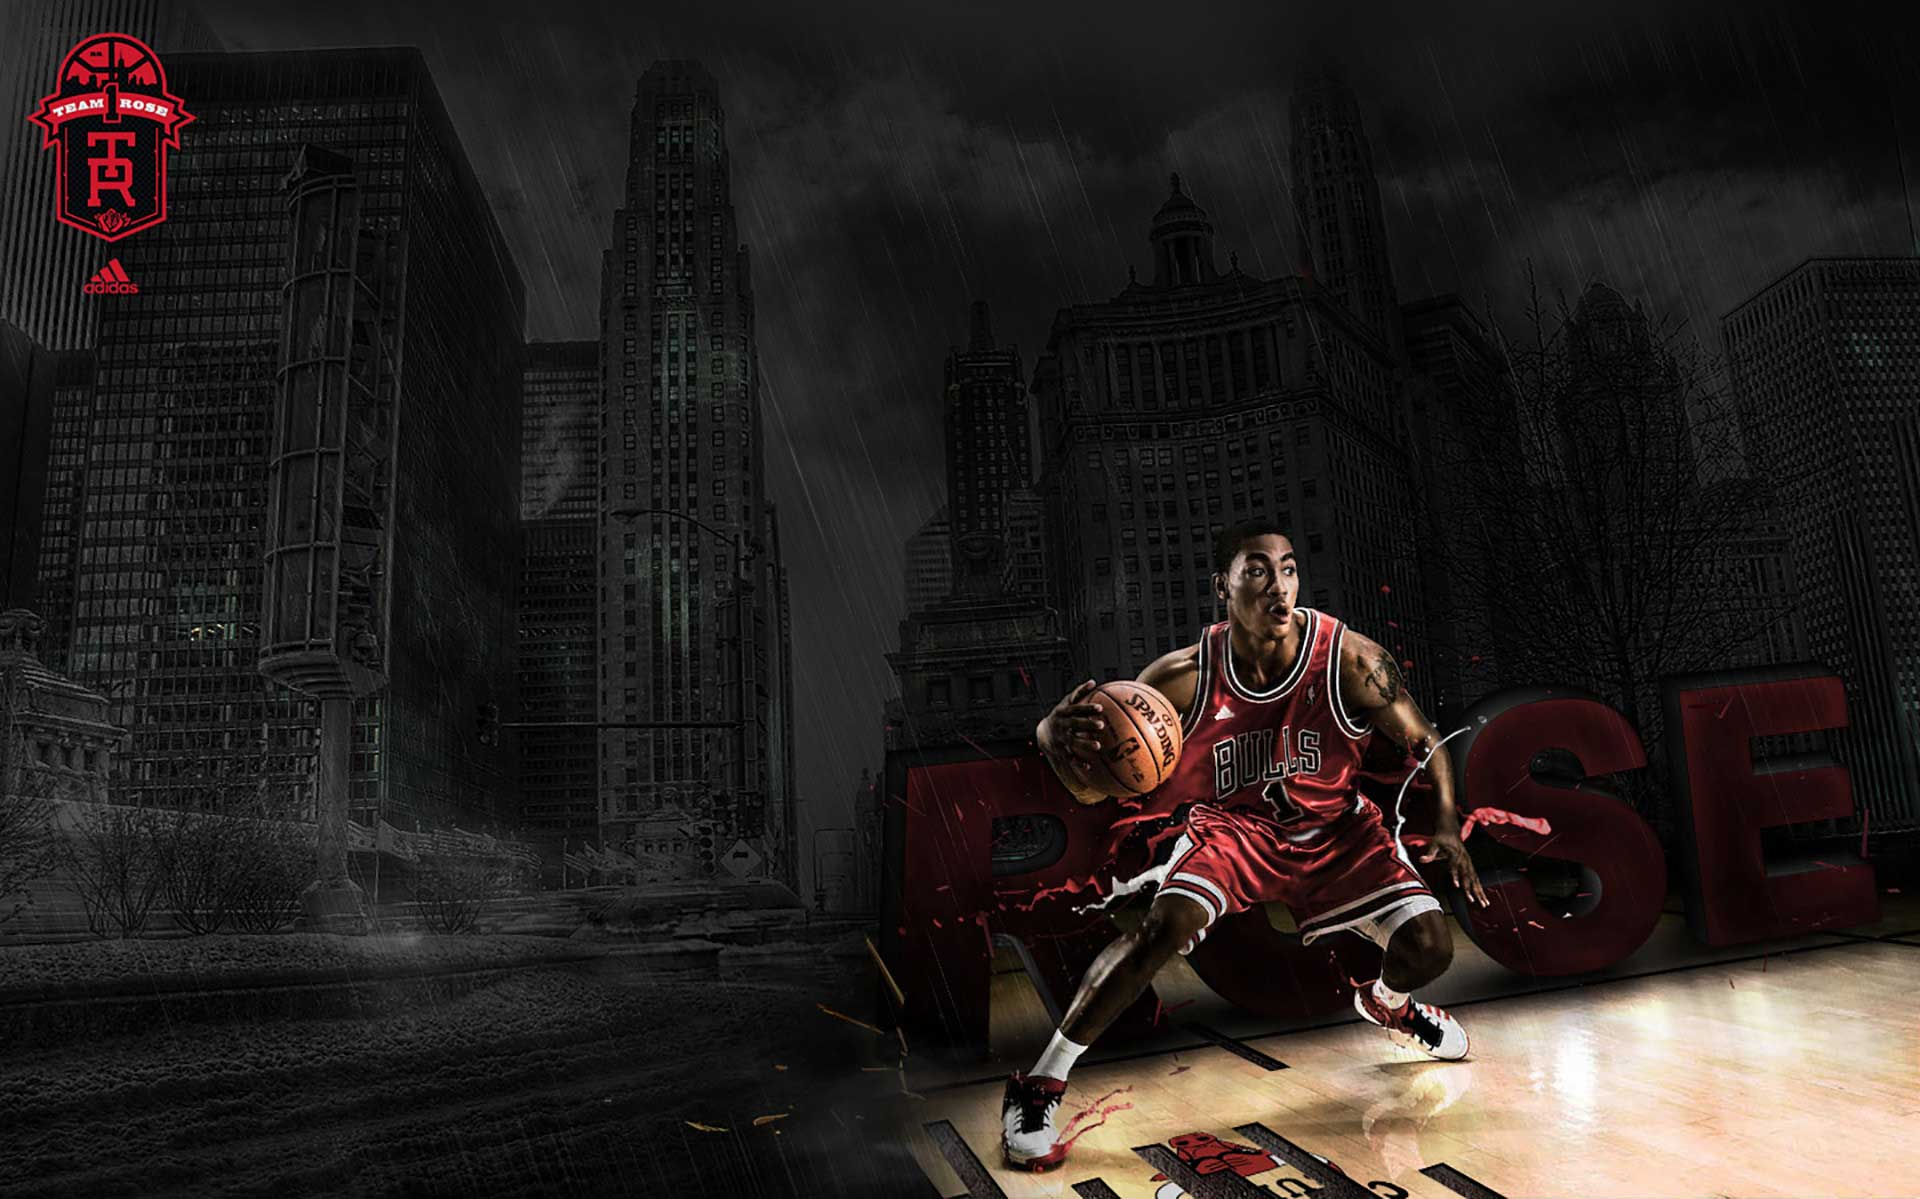 CGI-derrick-rose-dribbles-city-background--photography-Eastern Affair